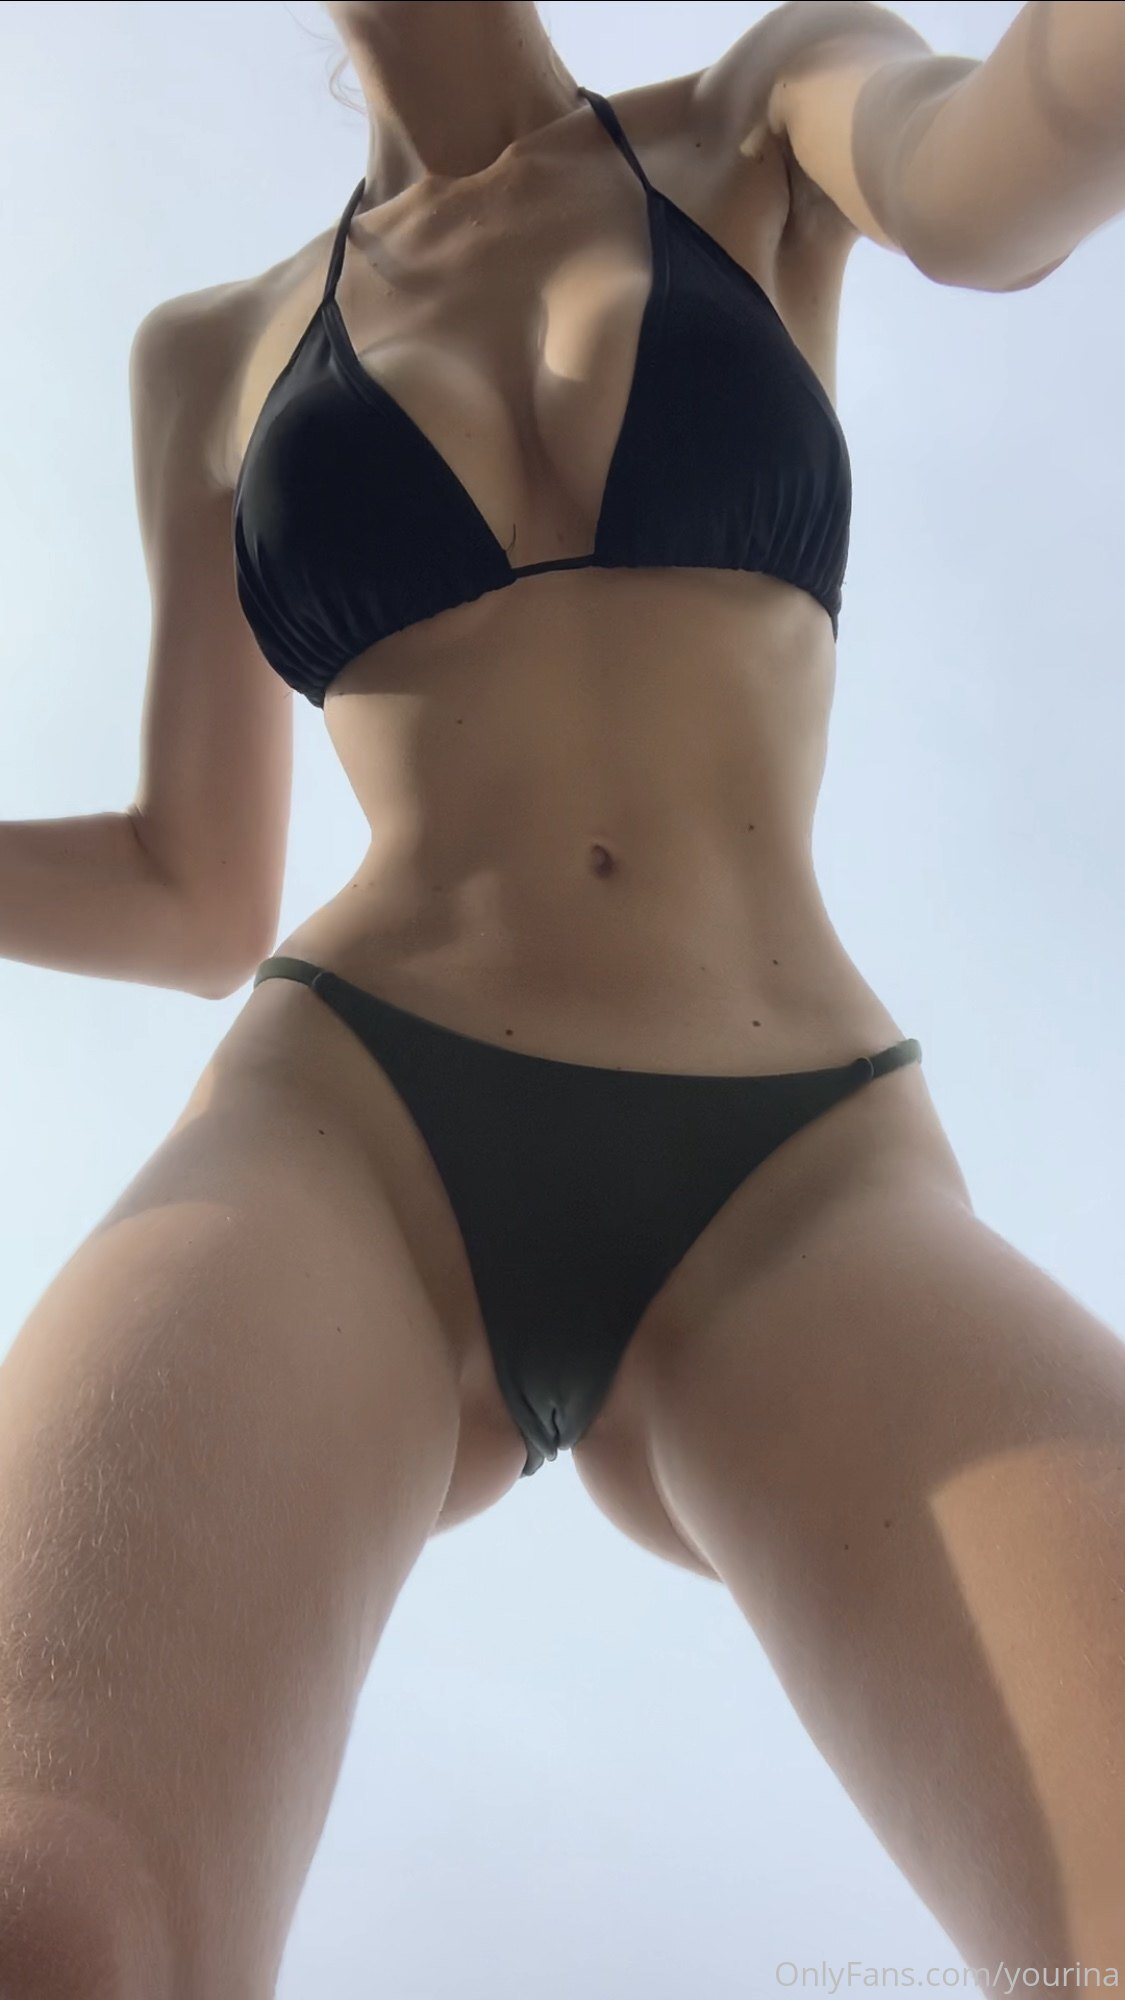 Yourina Onlyfans 0089